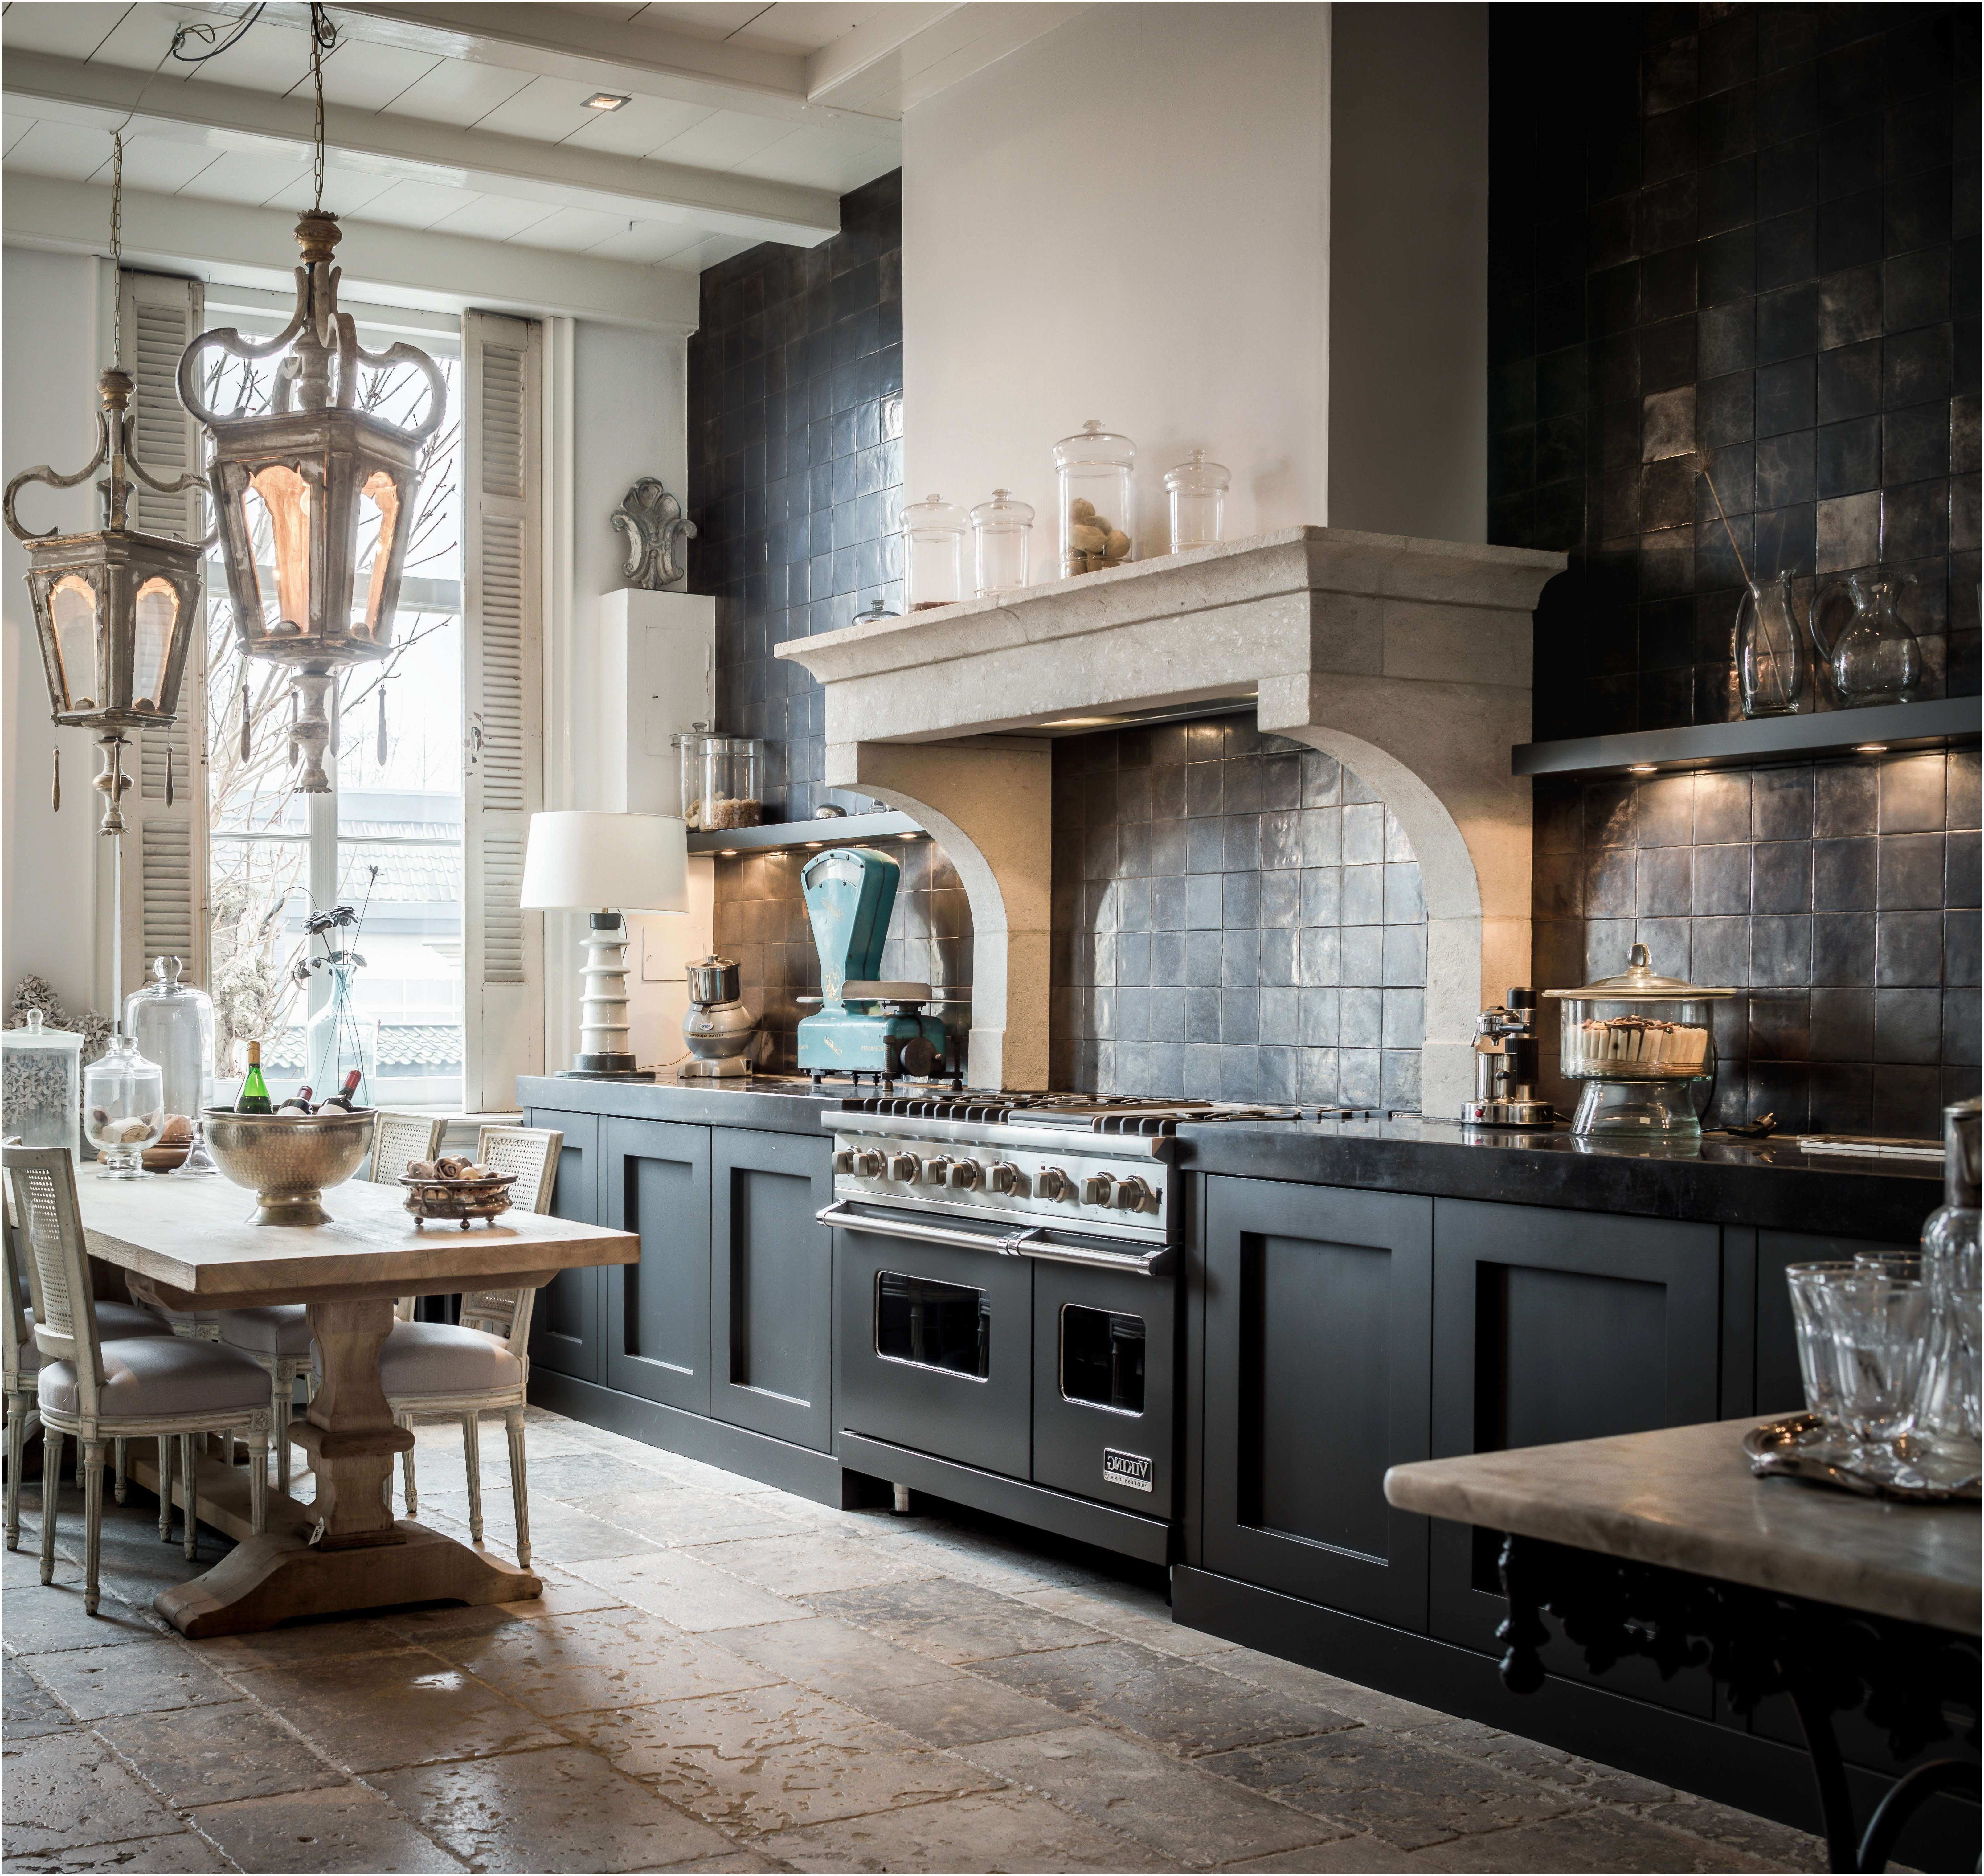 Kitchen Wall Pictures Lovely 24 Beau Decor Design Anciendemutu